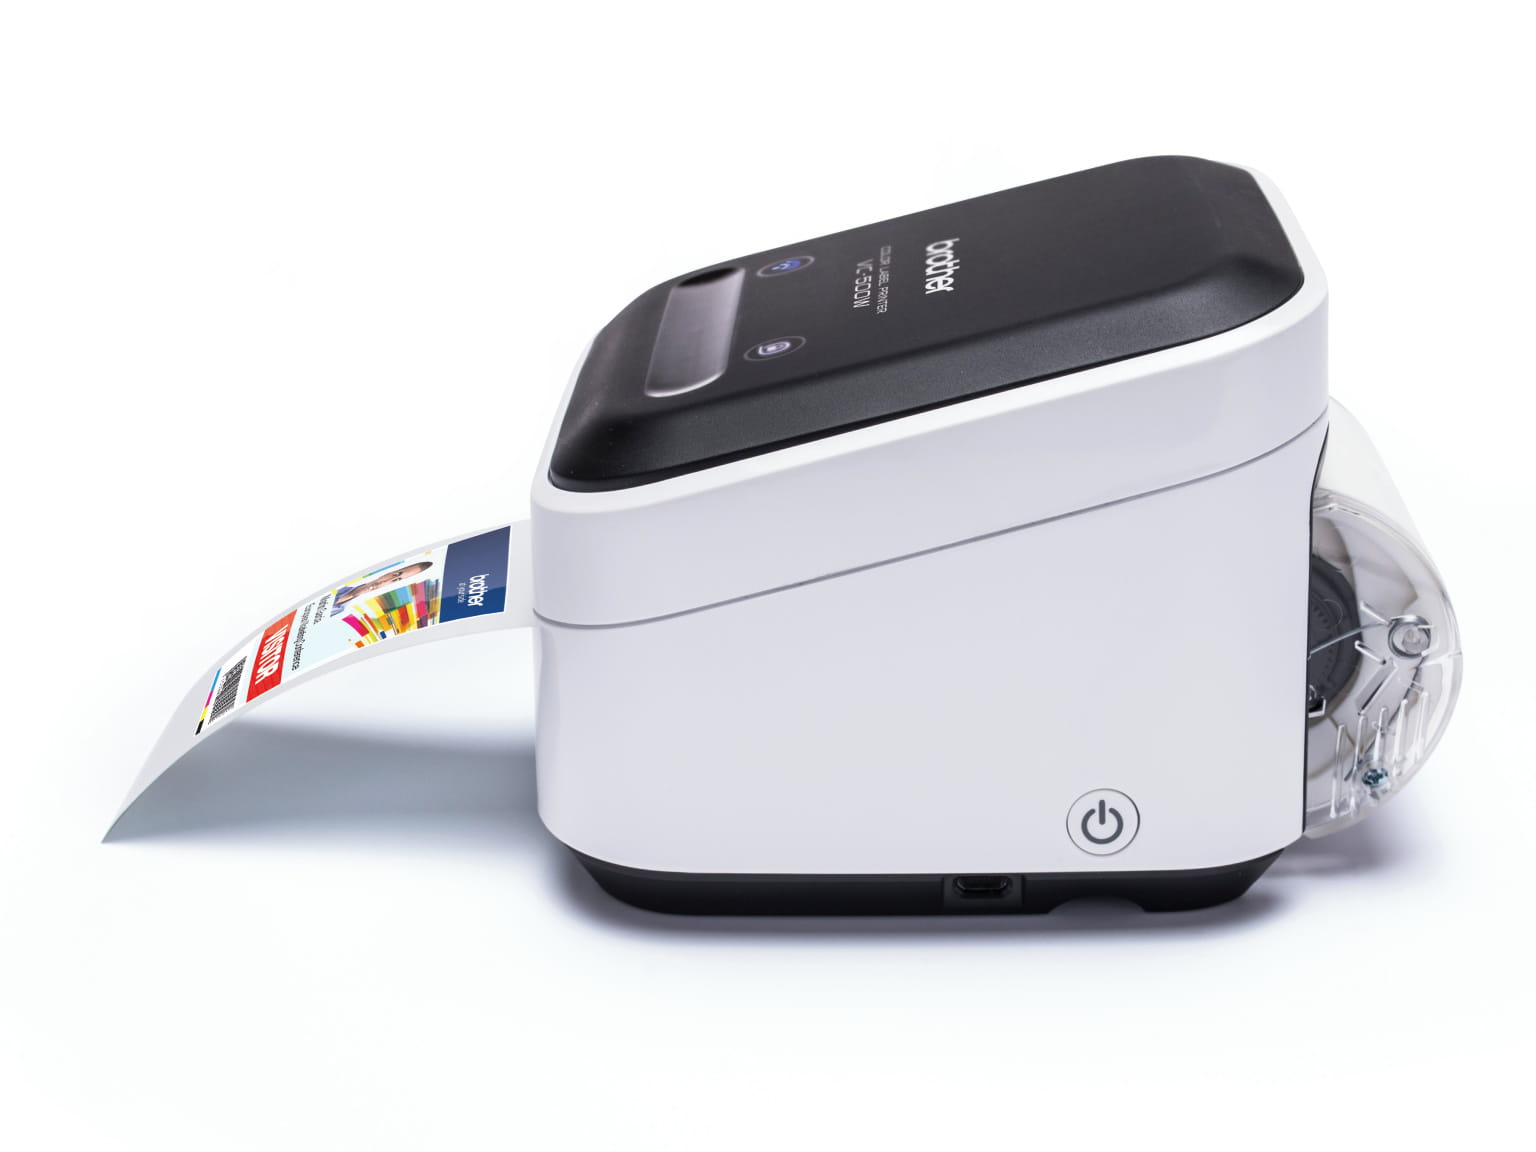 Brother VC-500W zero ink colour label printer with photo label output